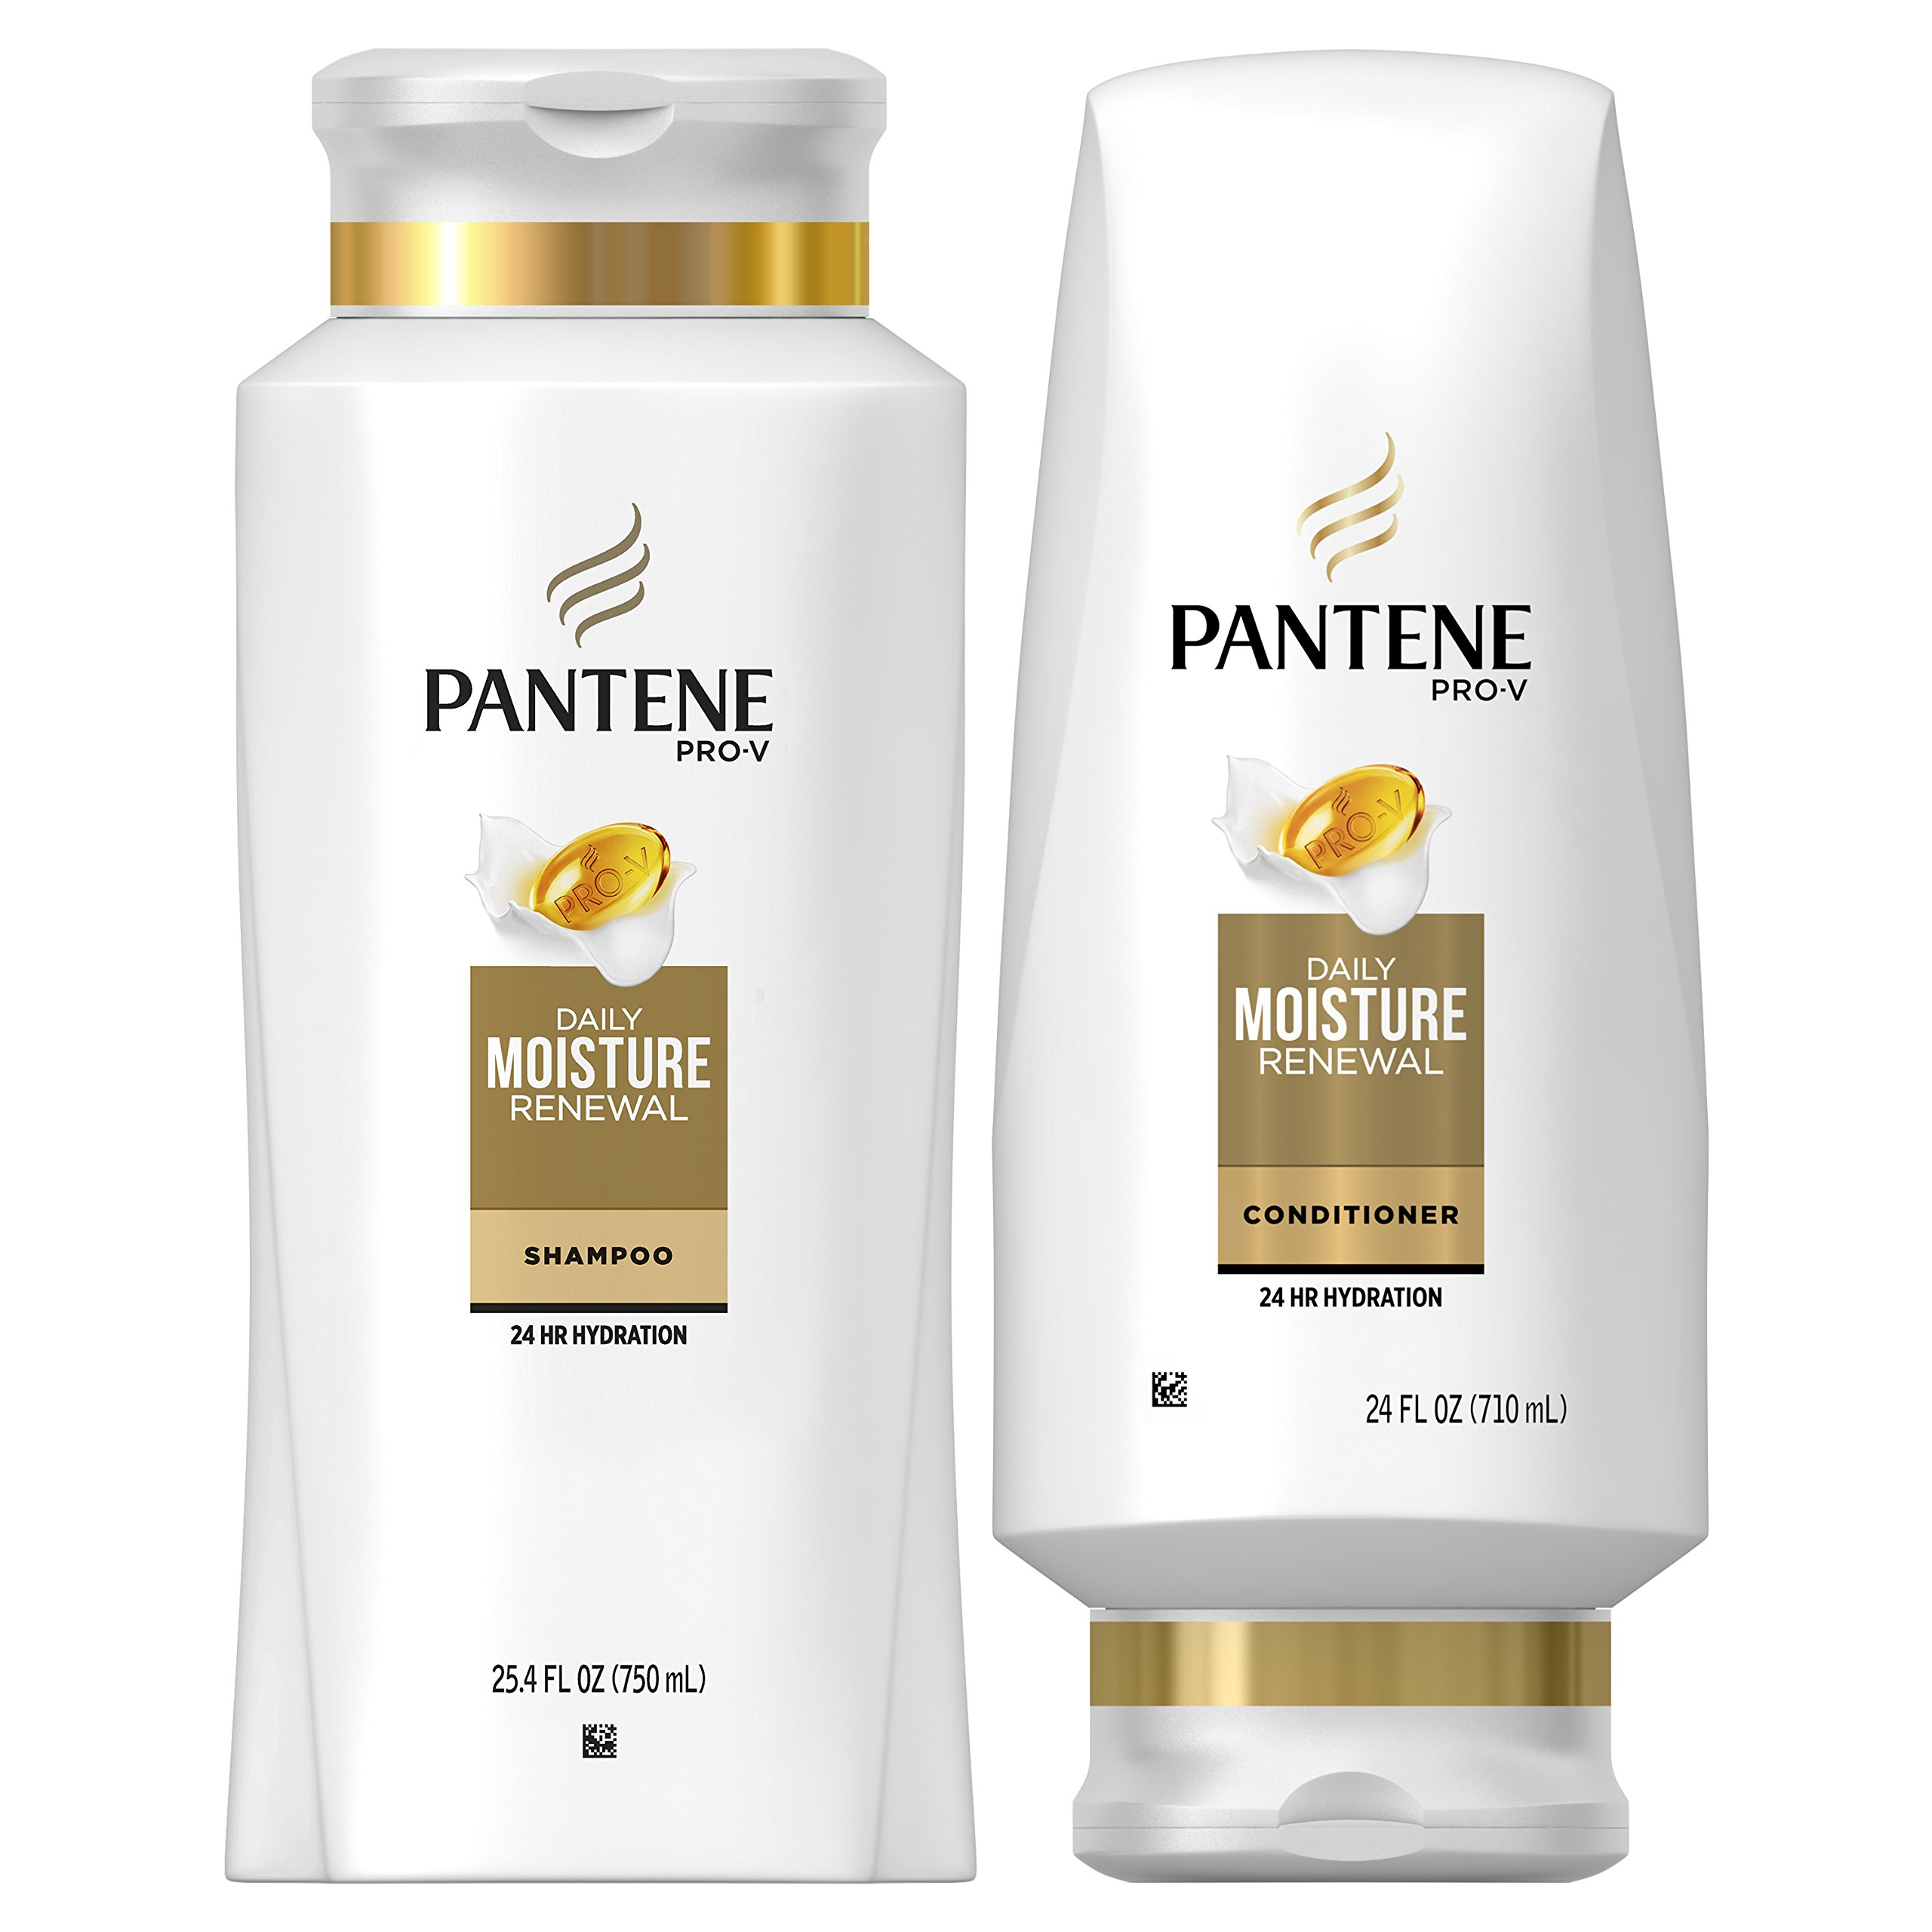 Pantene Moisturizing Shampoo 25.4 OZ and Sulfate Free Conditioner 24 OZ for Dry Hair, Daily Moisture Renewal, Bundle Pack (Packaging May Vary) by Pantene